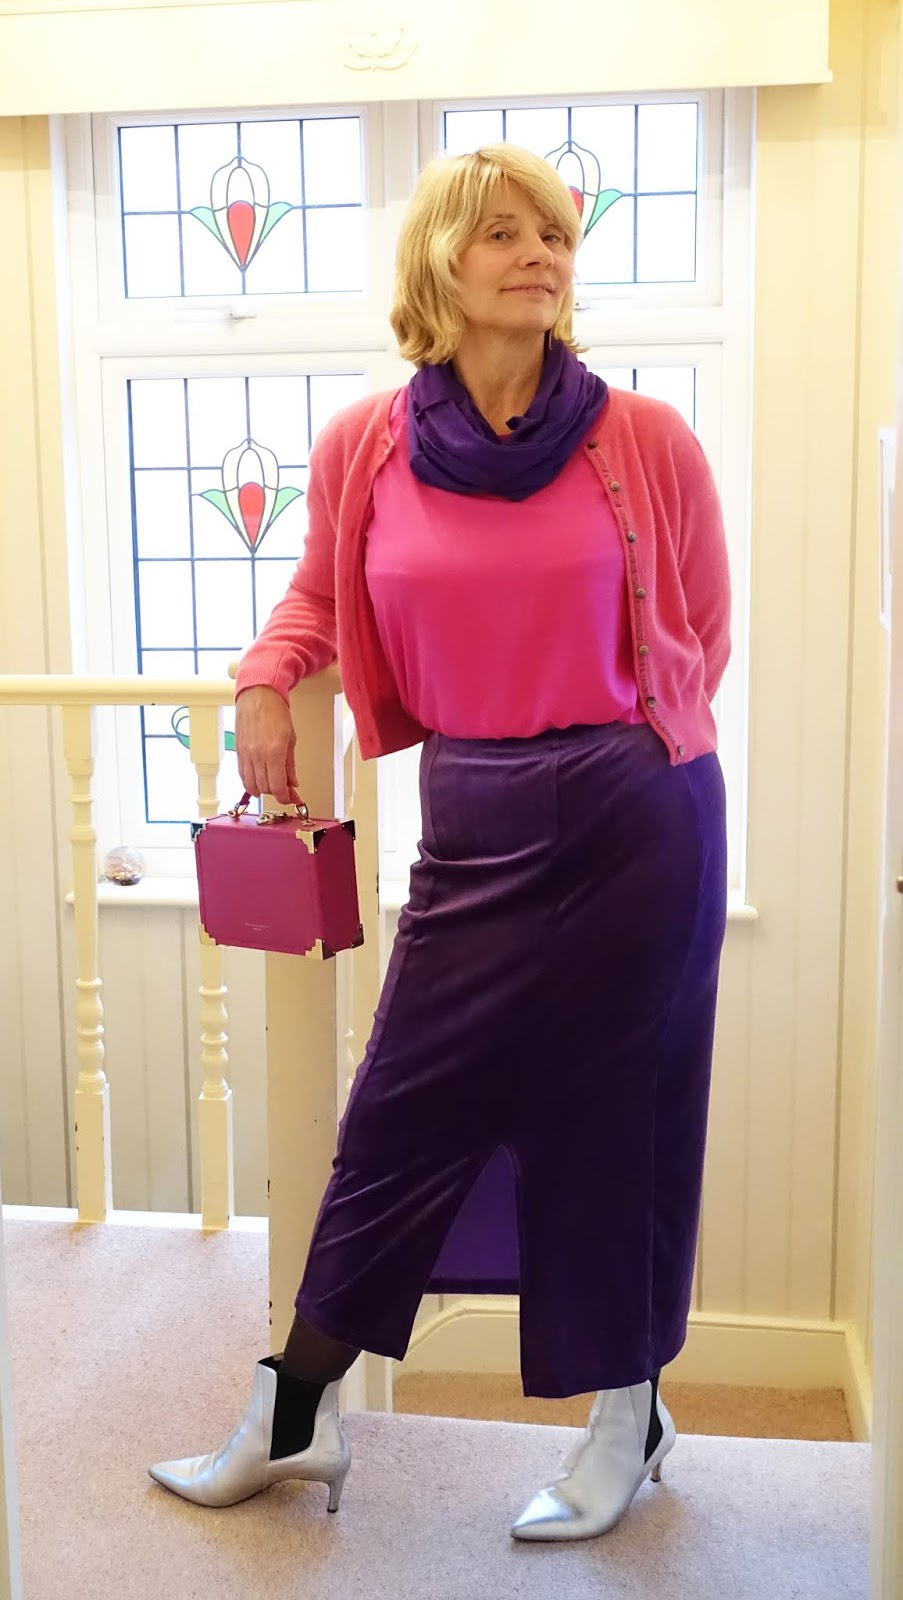 Silver ankle boots with a velvet midi violet skirt and pink top and cro